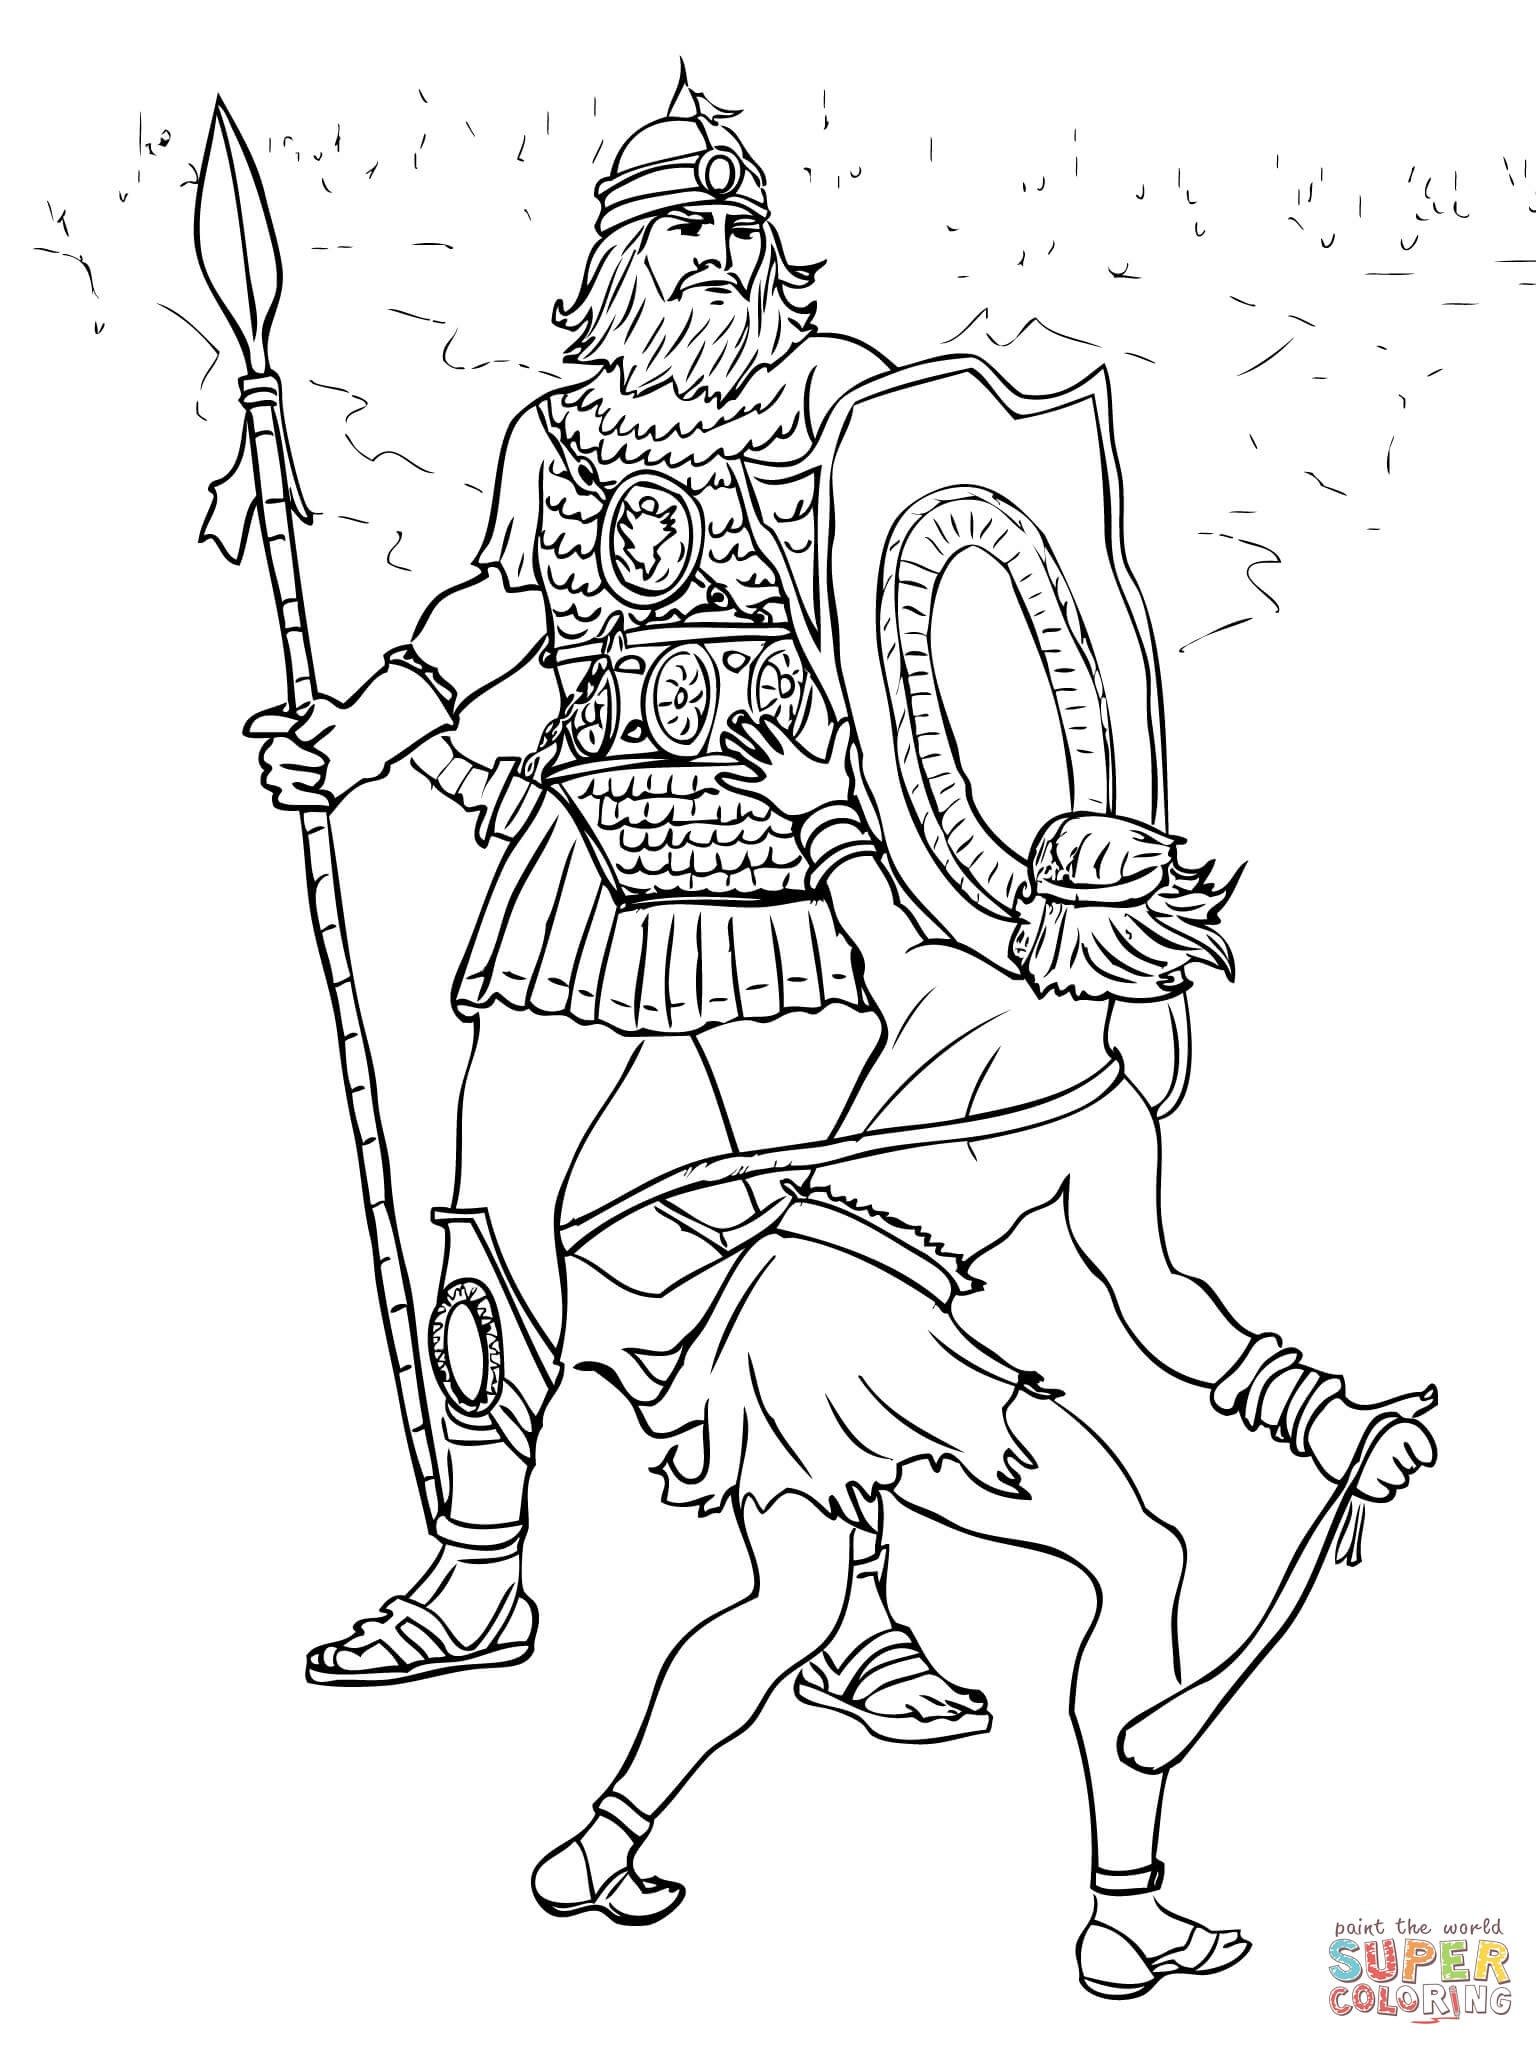 Goliath Drawing at GetDrawings.com | Free for personal use ...